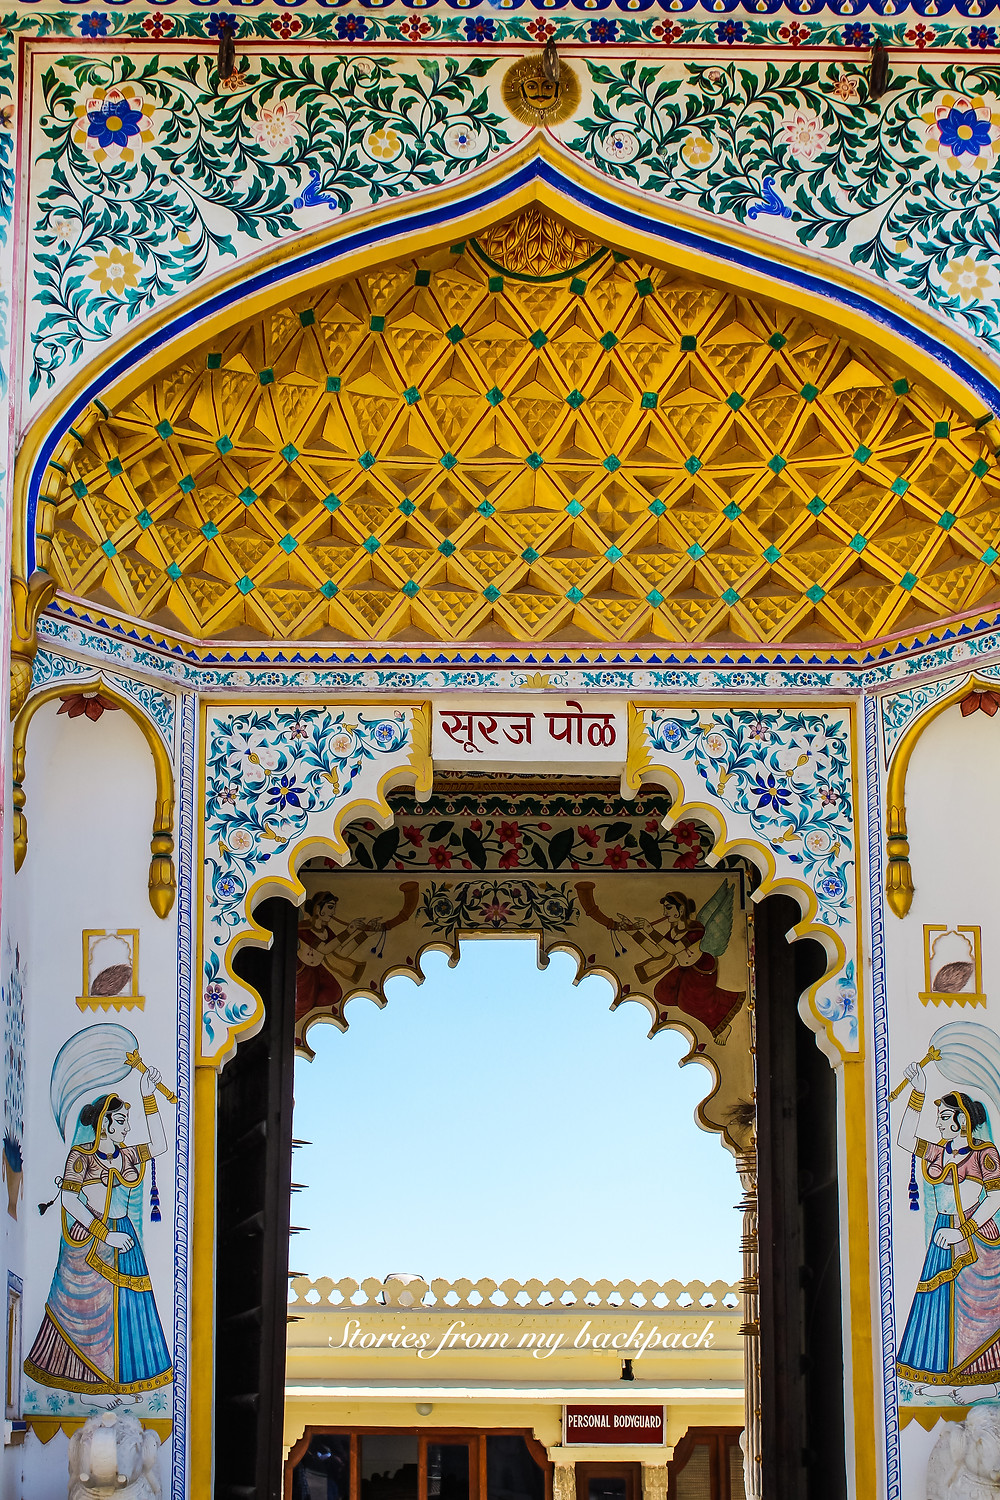 City palace Udaipur, offbeat things to do in Udaipur, things to do in Udaipur, sightseeing in Udaipur